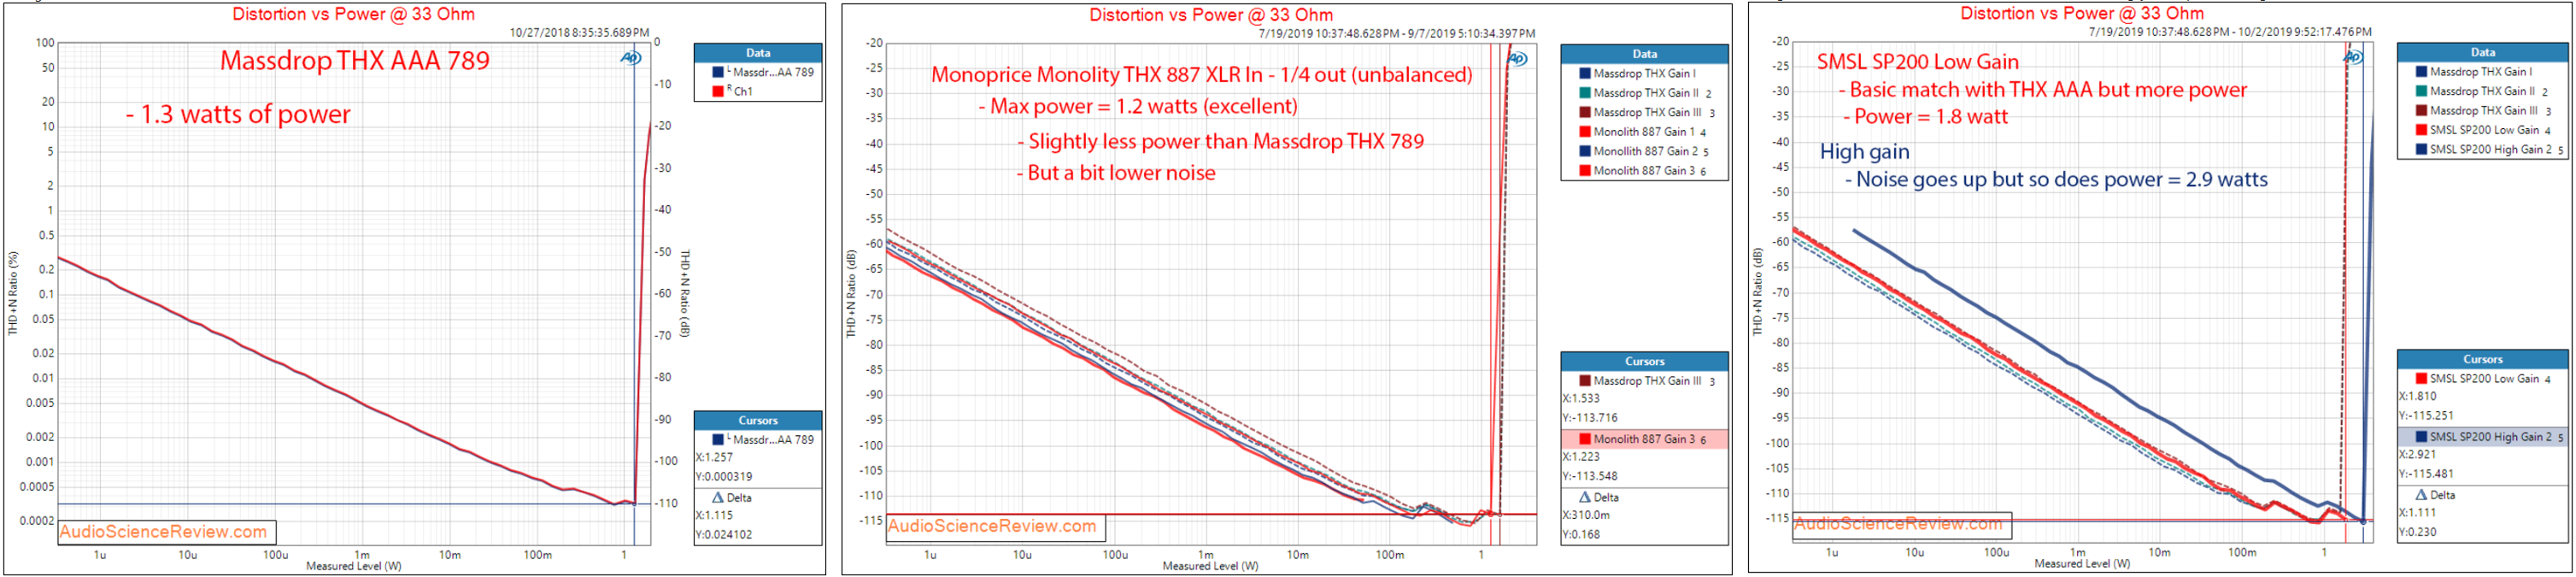 6.power_vs_distortion_33ohm.png